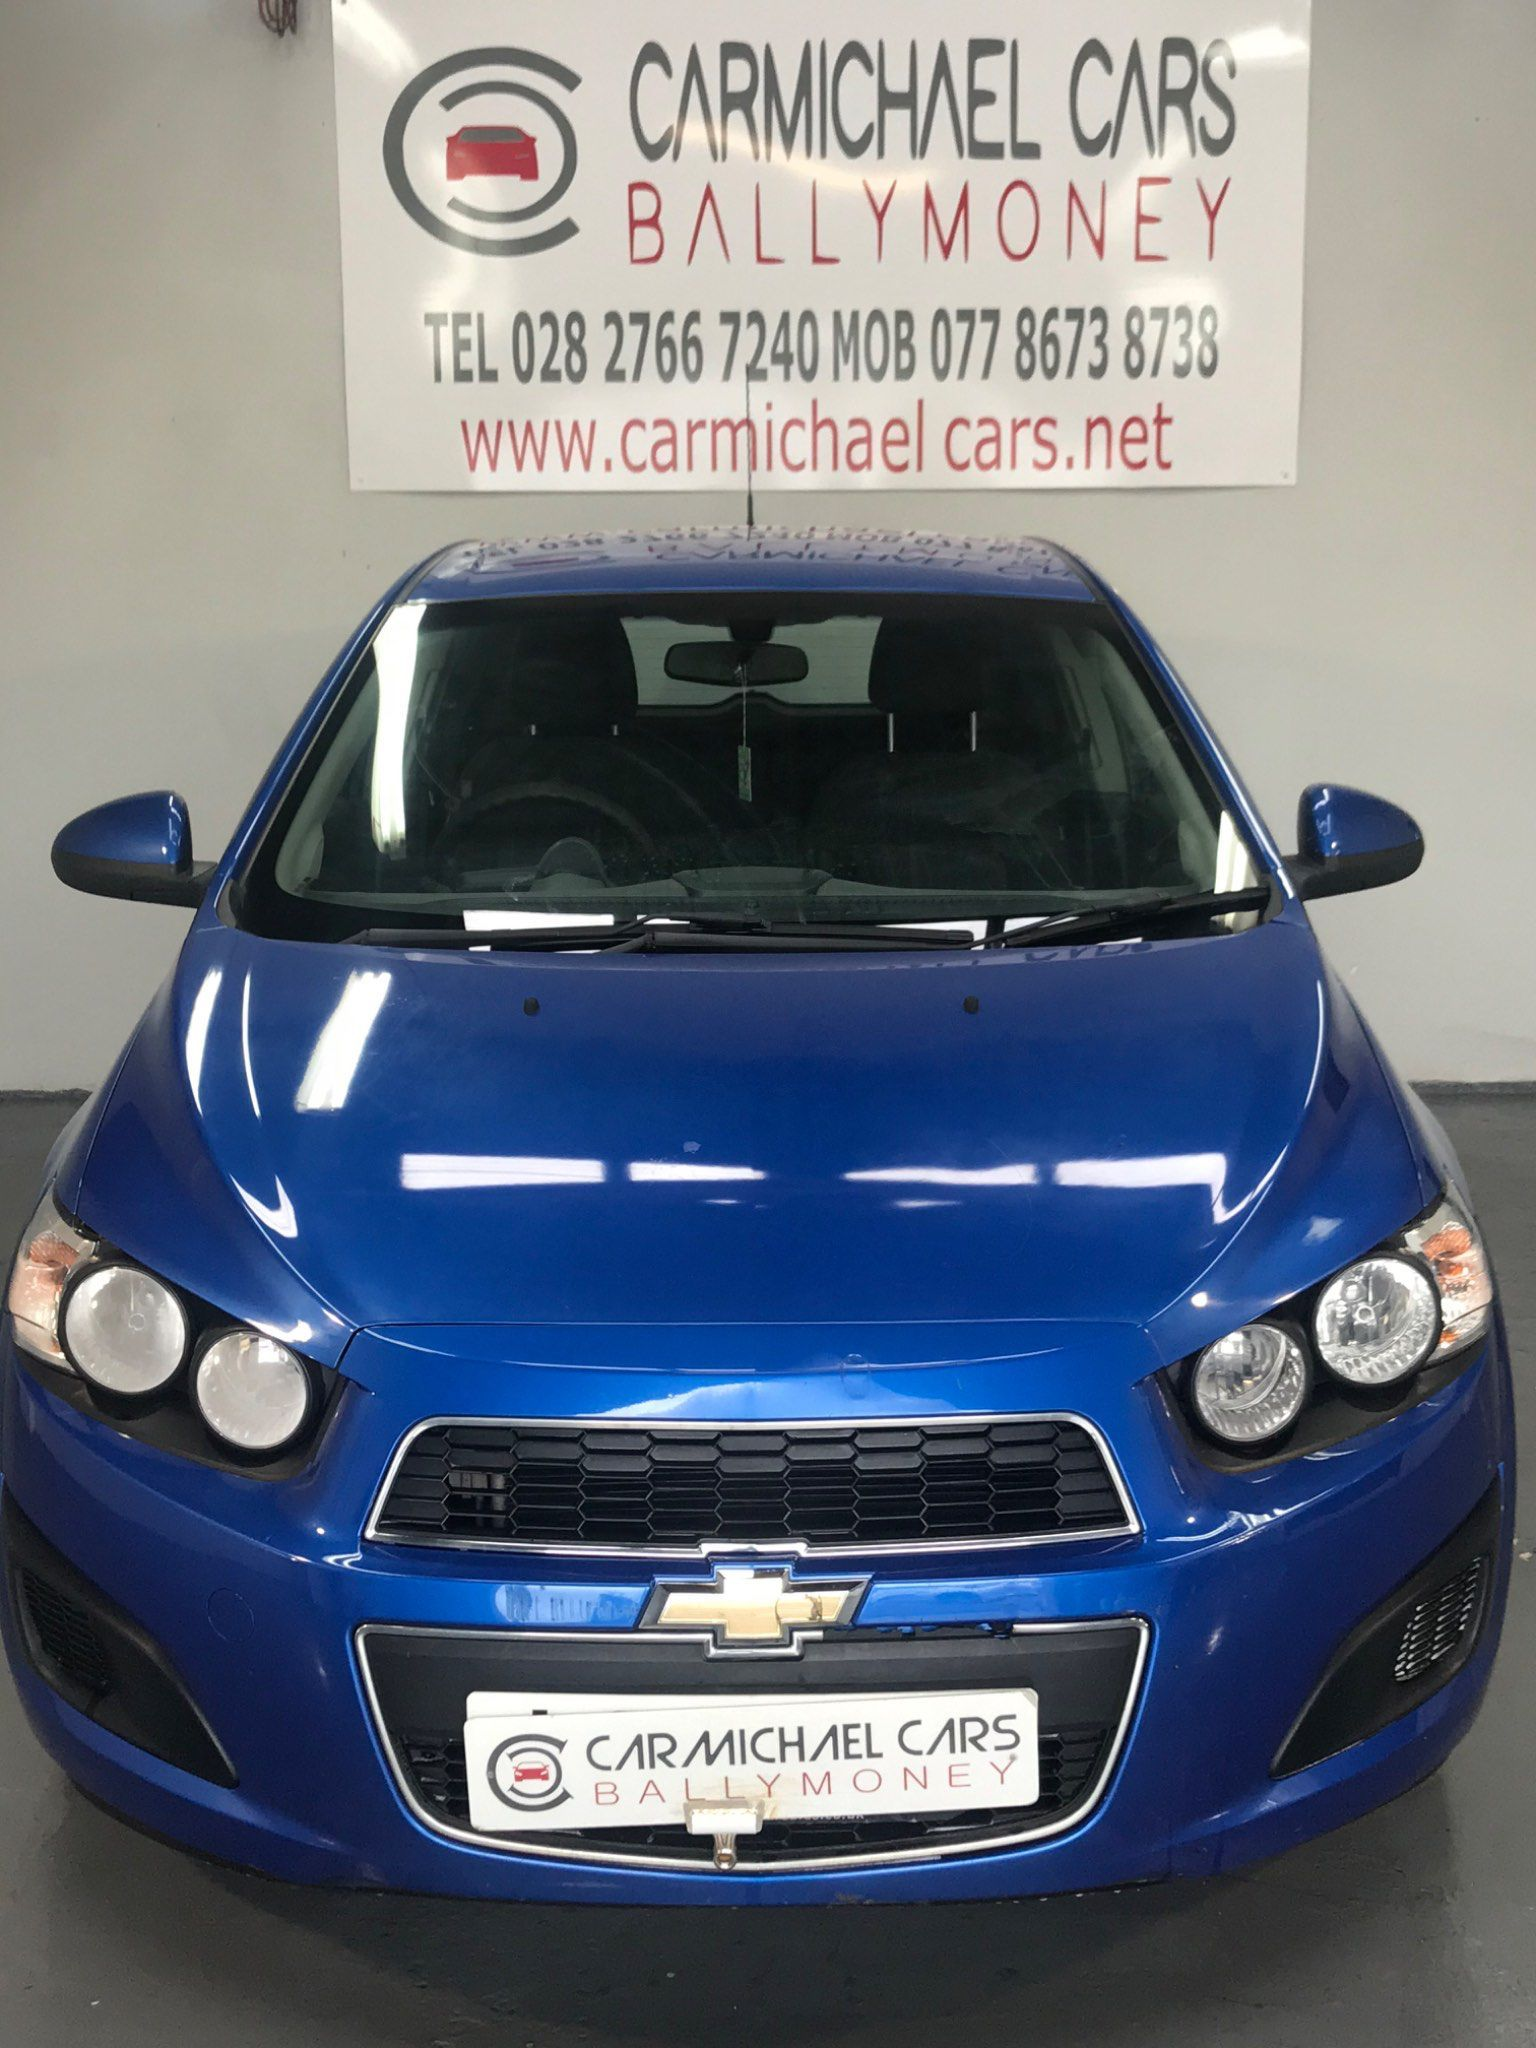 2012 CHEVROLET Aveo 1.2 LS Petrol Manual BLUE, 69K, – Carmichael Cars Ballymoney full